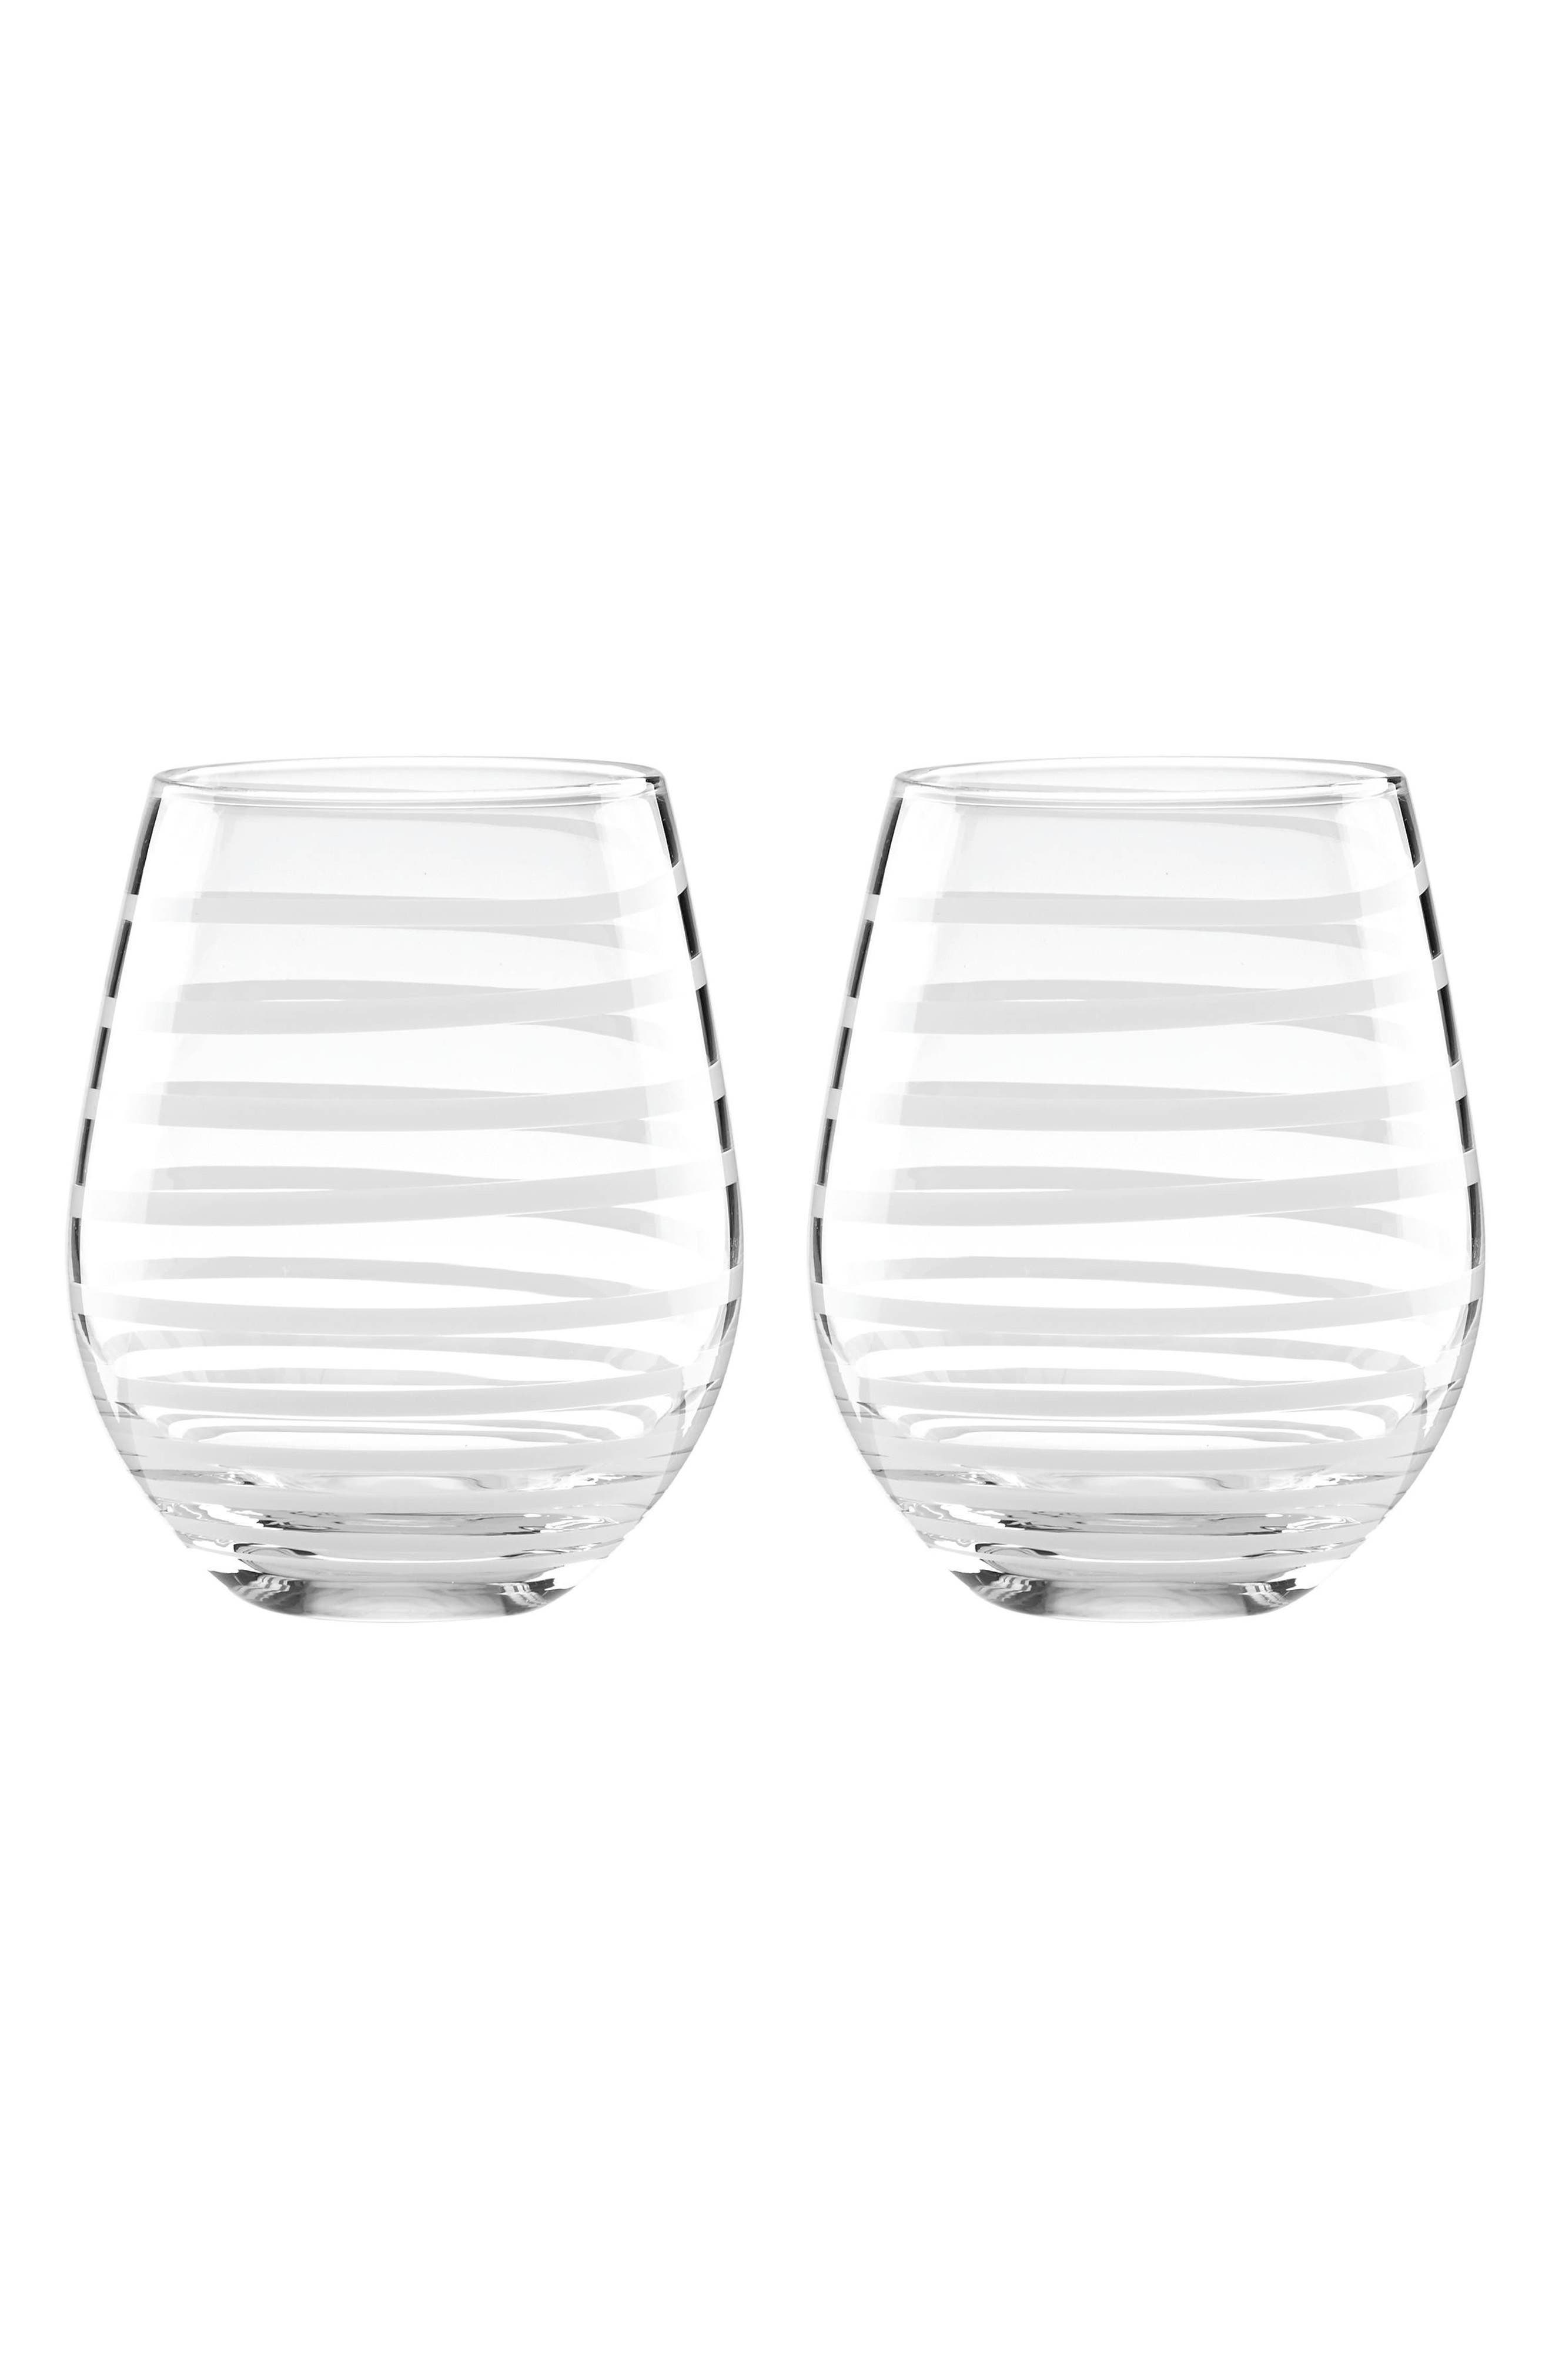 Alternate Image 1 Selected - kate spade new york set of 2 etched stemless wine glasses